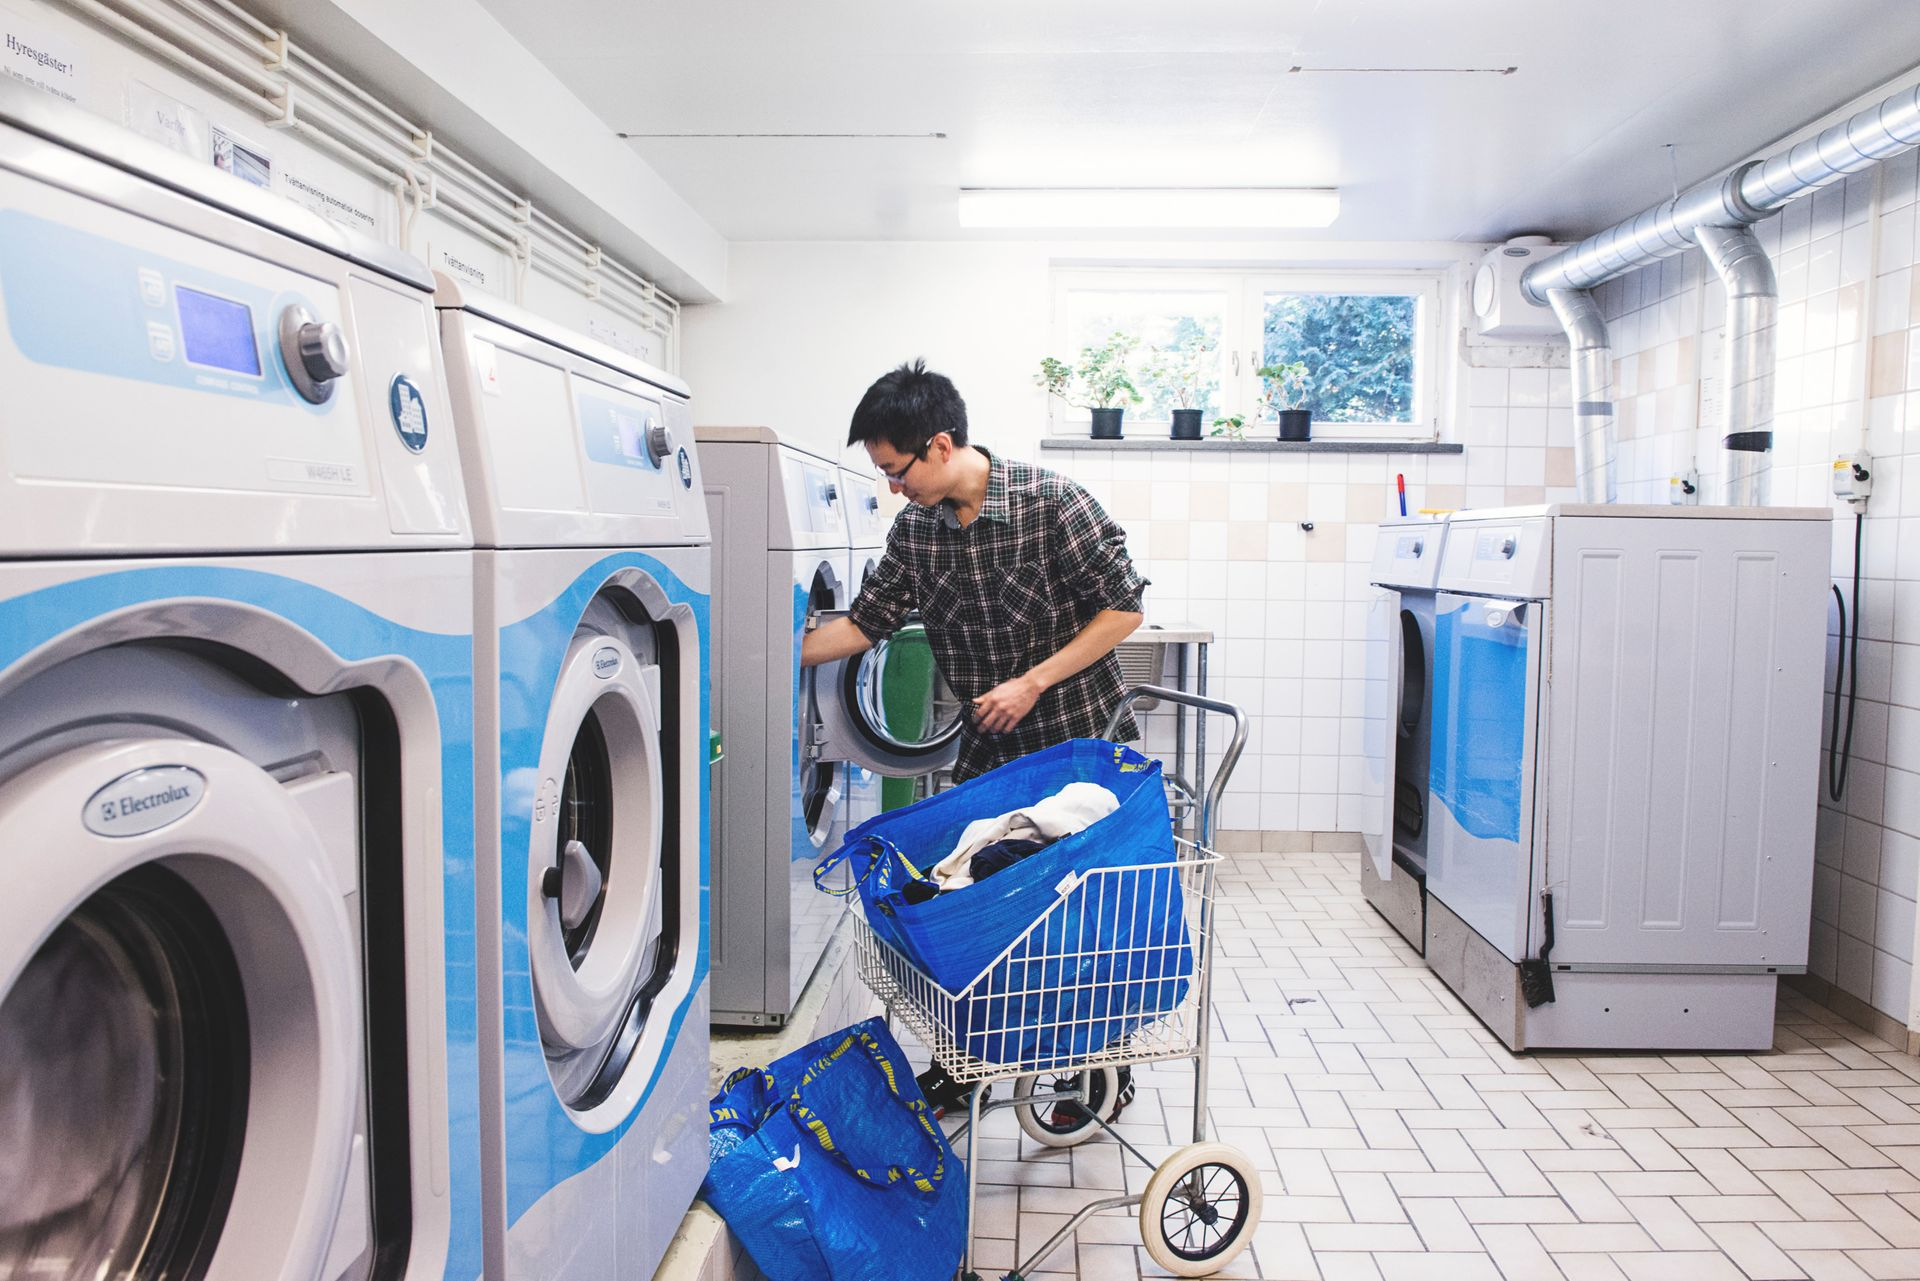 Student doing laundry in student housing in Gothenburg.